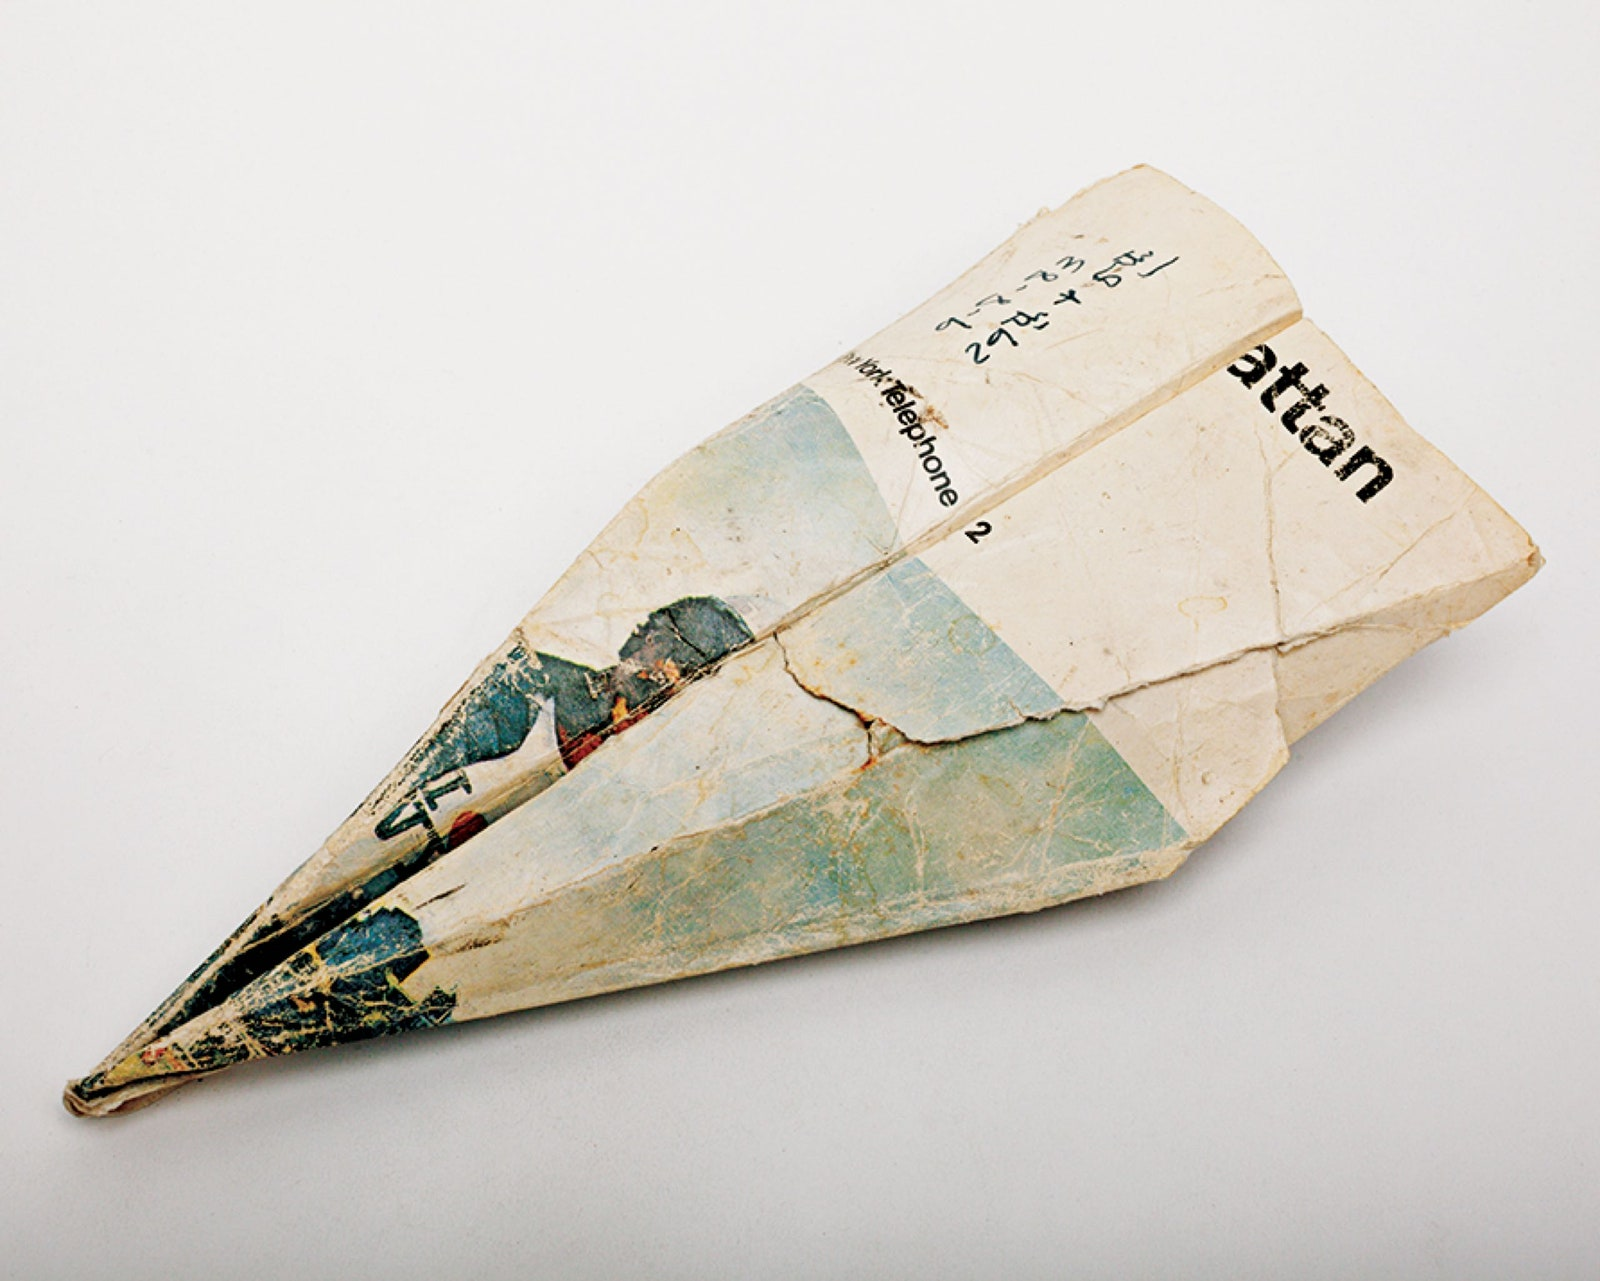 harry-everett-smith-paper-airplane-everythingwithatwist-11